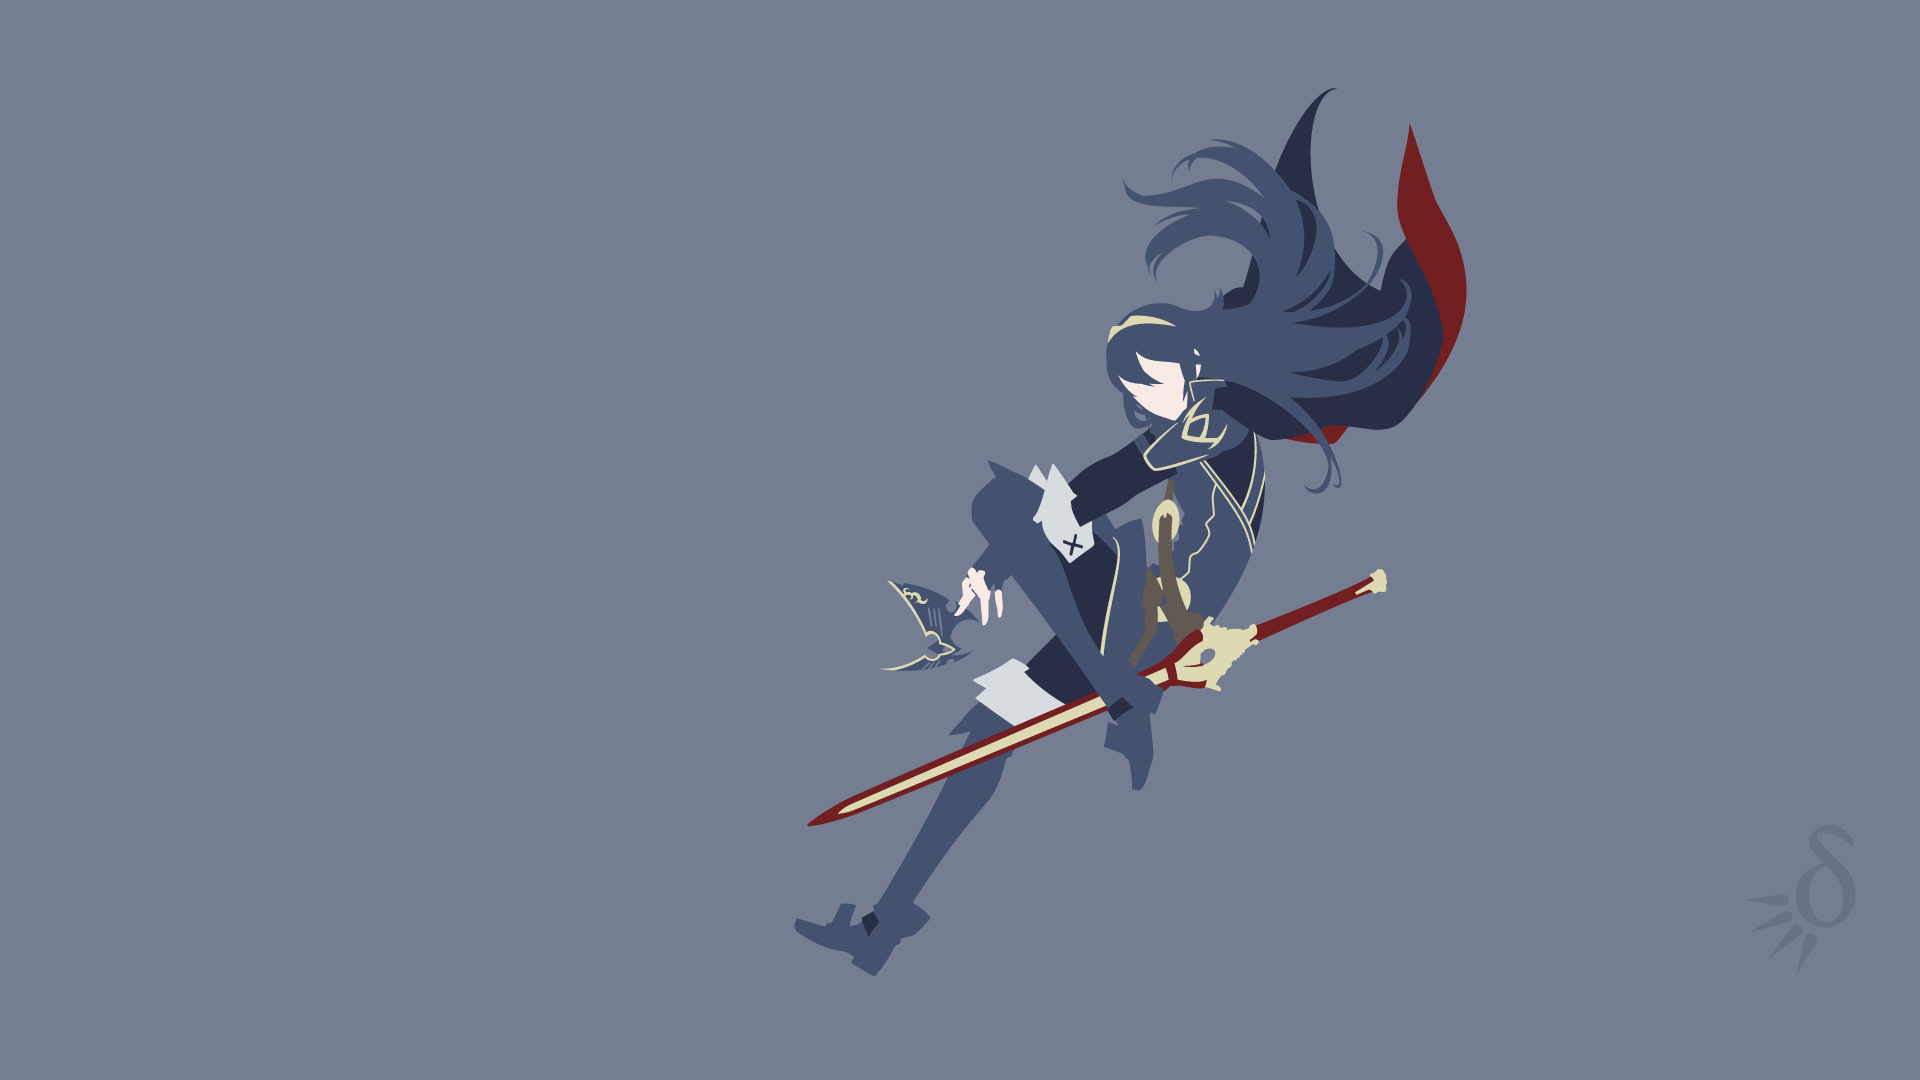 Fire Emblem Awakening Lucina By Krukmeister On Deviantart